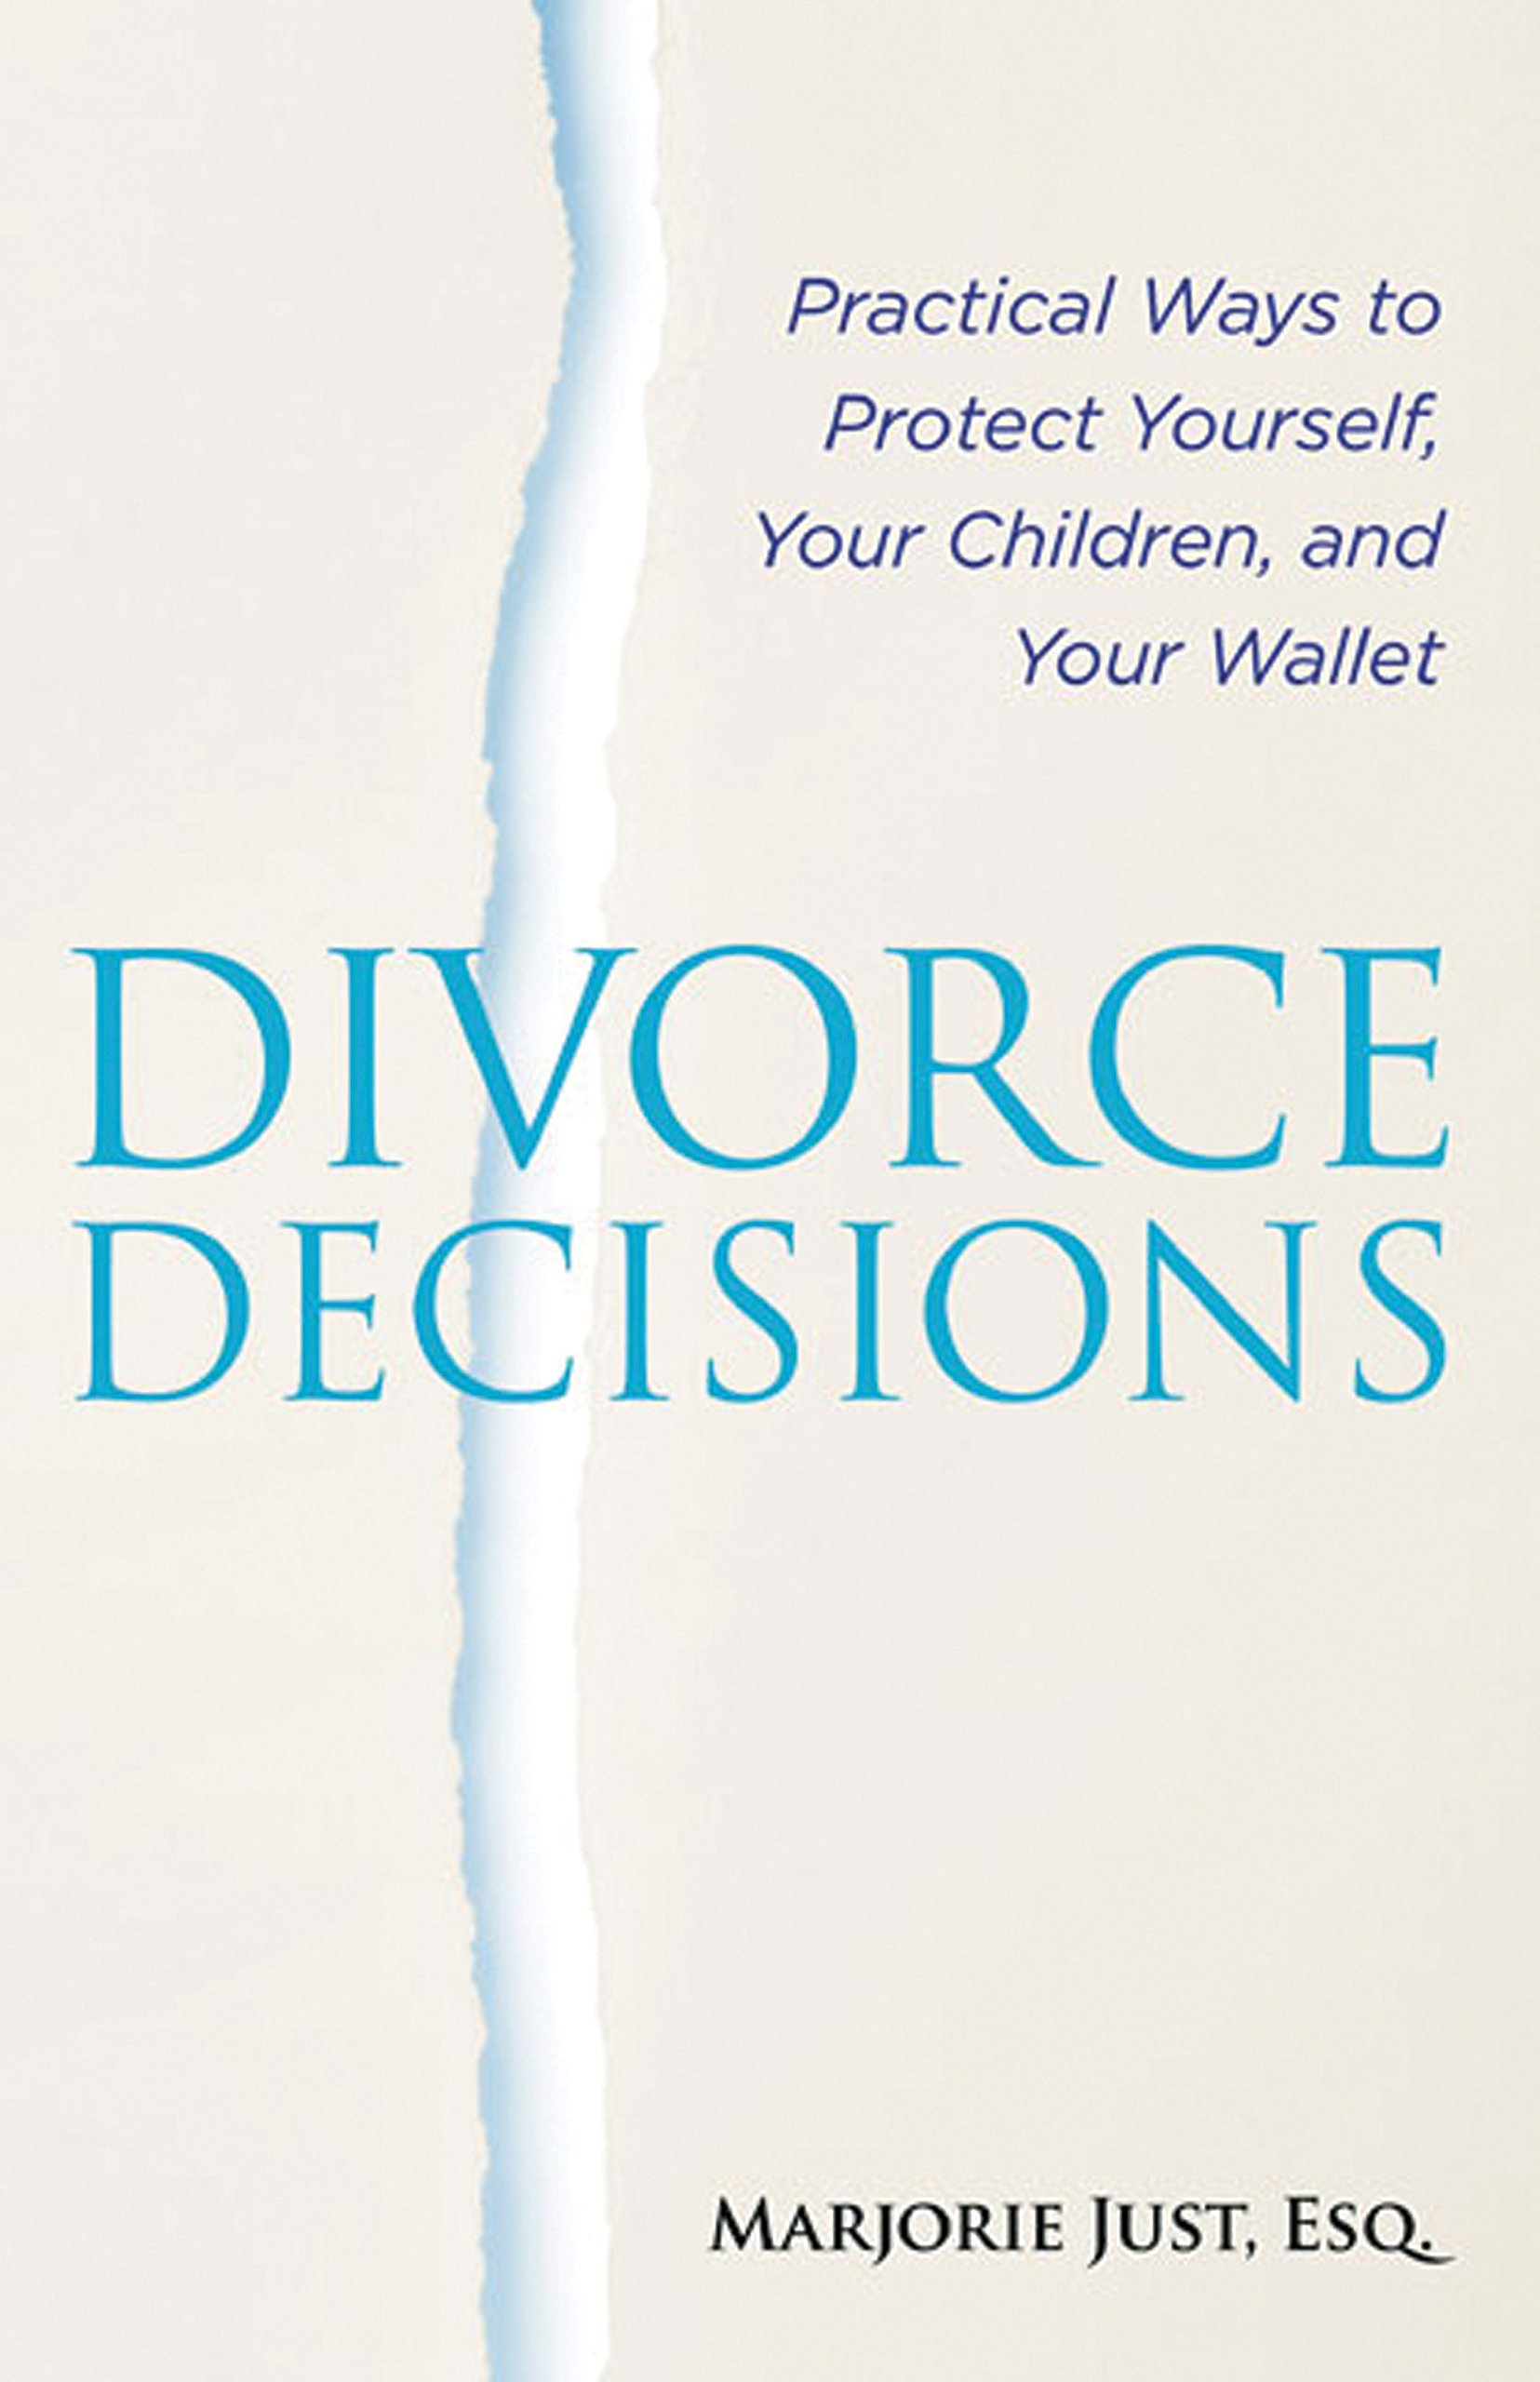 Divorce Decisions: Practical Ways to Protect Yourself, Your Children, and Your Wallet (Capital Ideas (Capital Books)) pdf